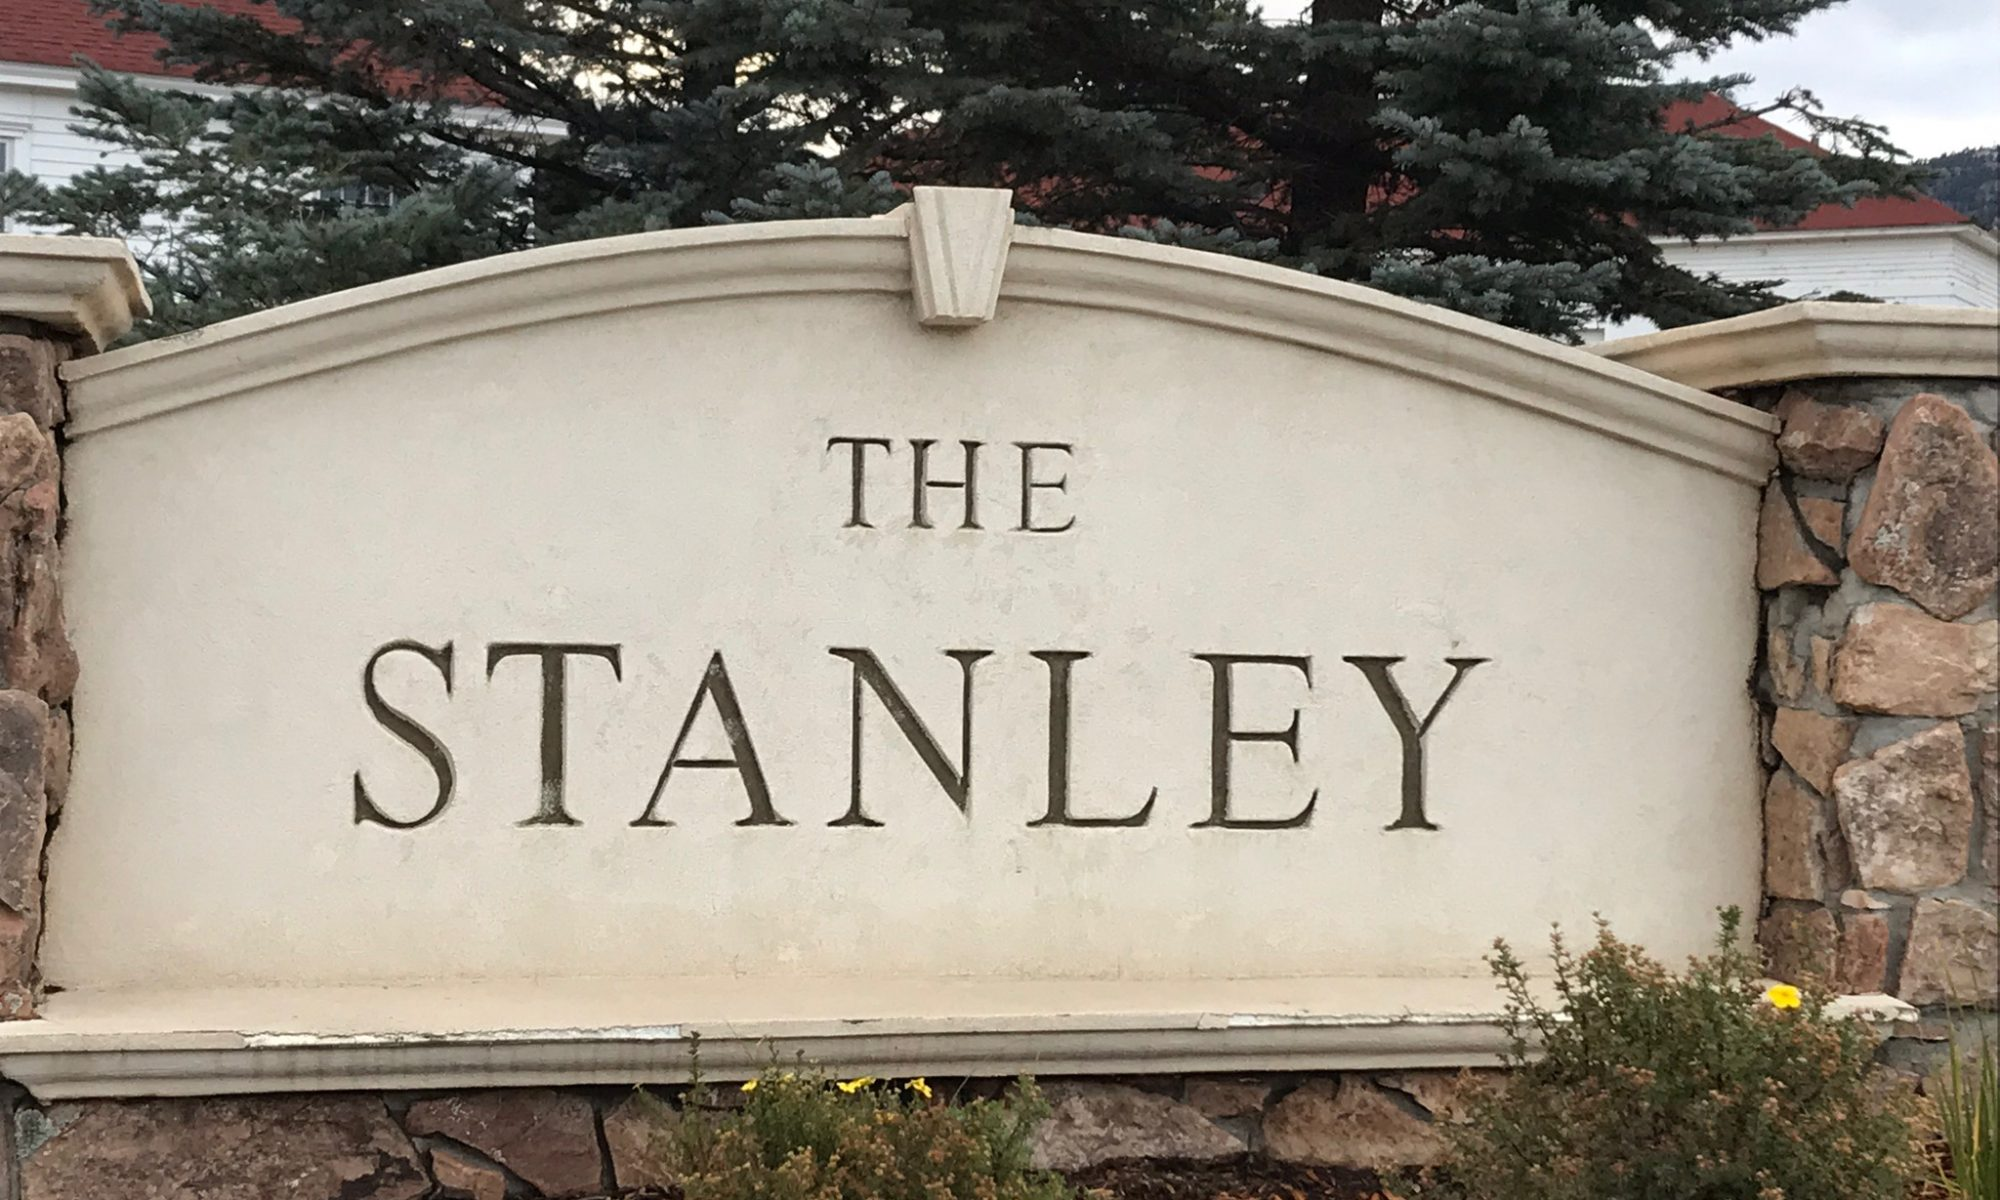 The stanley hotel png address images gallery for Free.